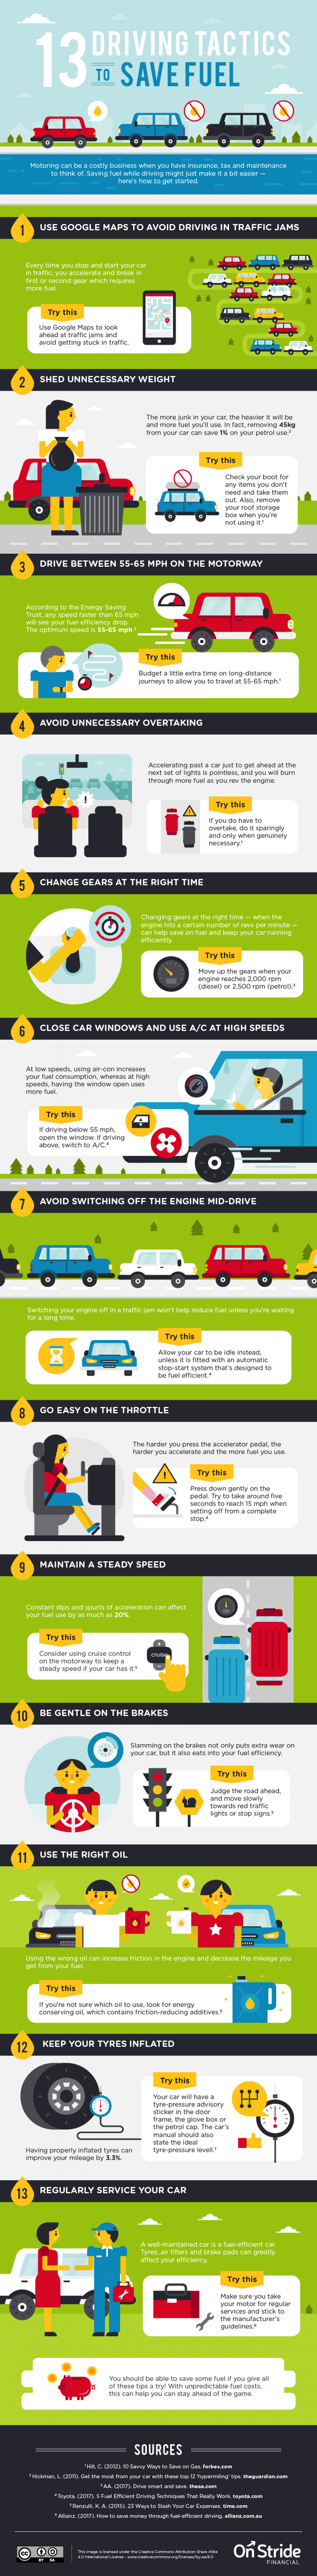 13 Driving Tactics to Save Fuel Infographic